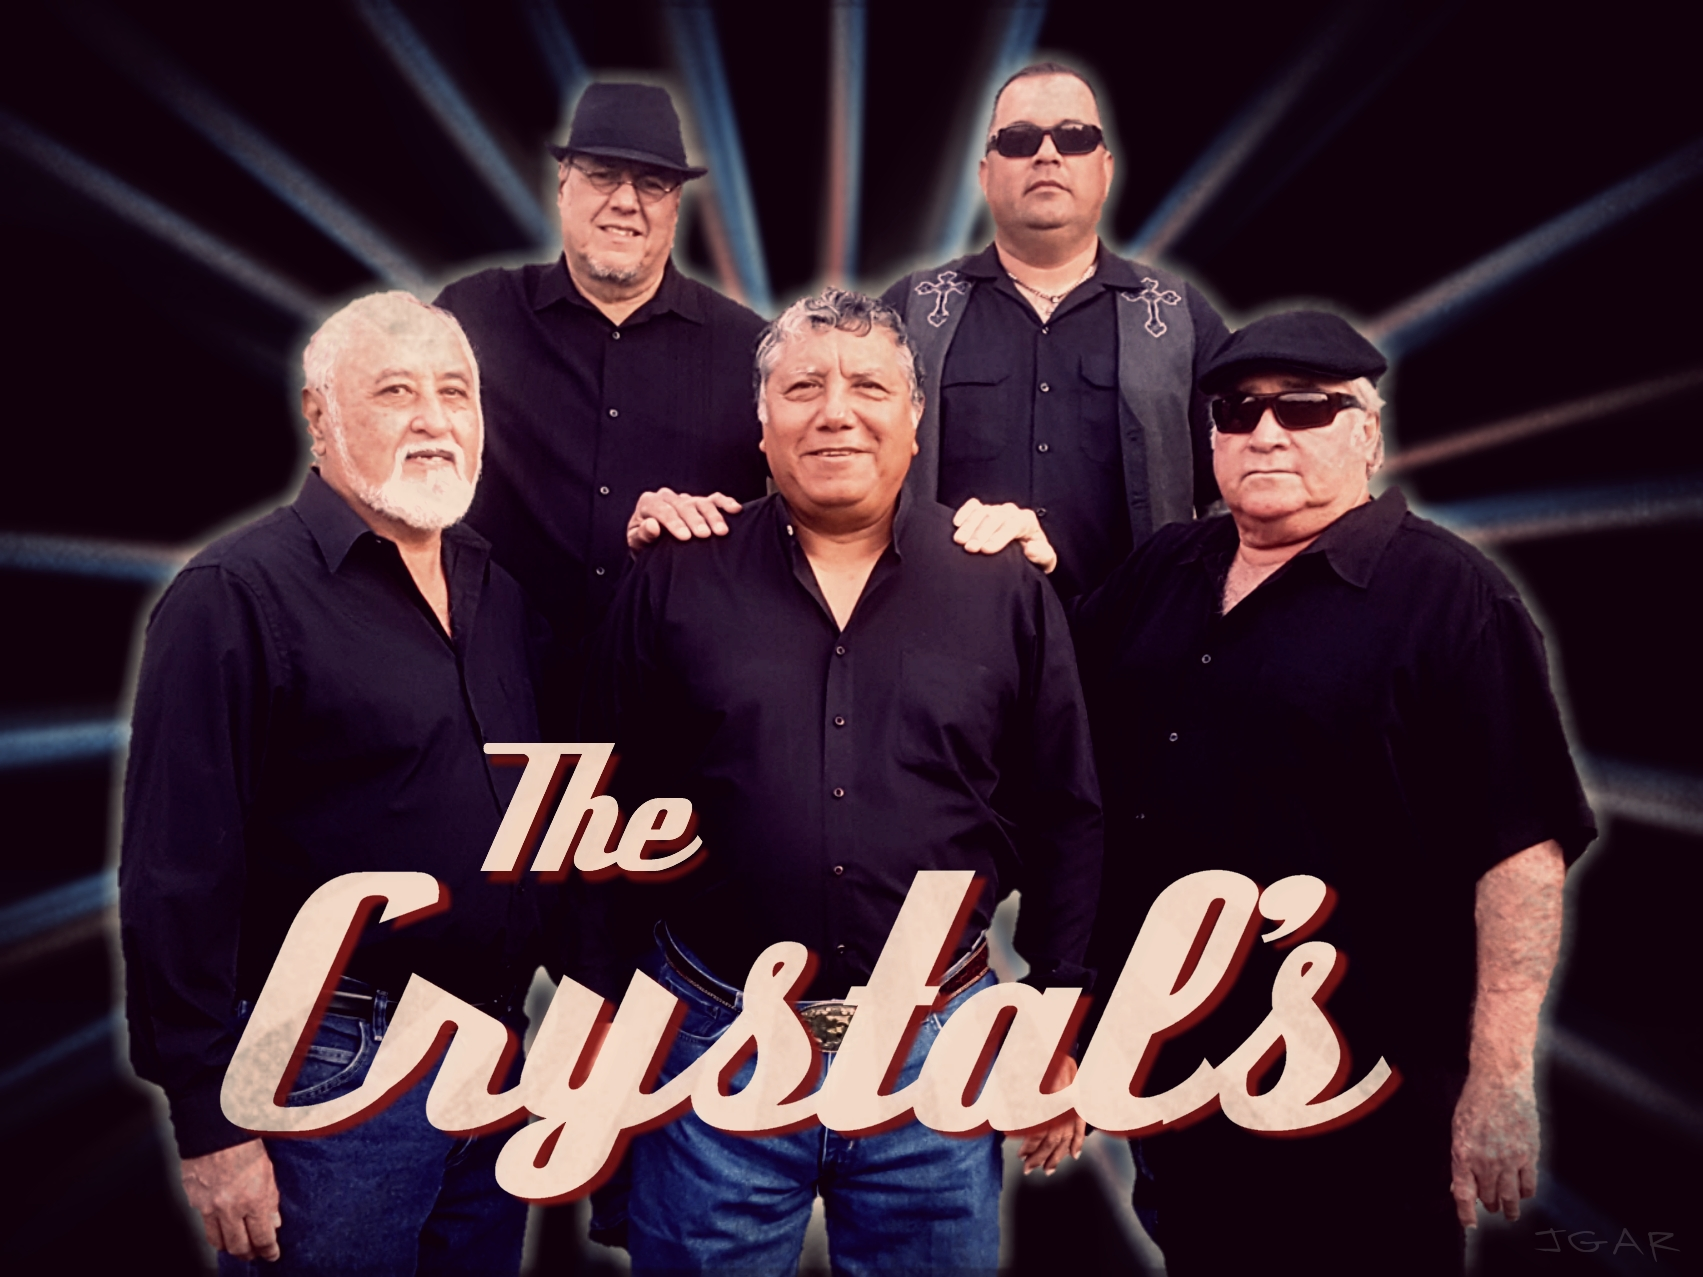 The Crystals